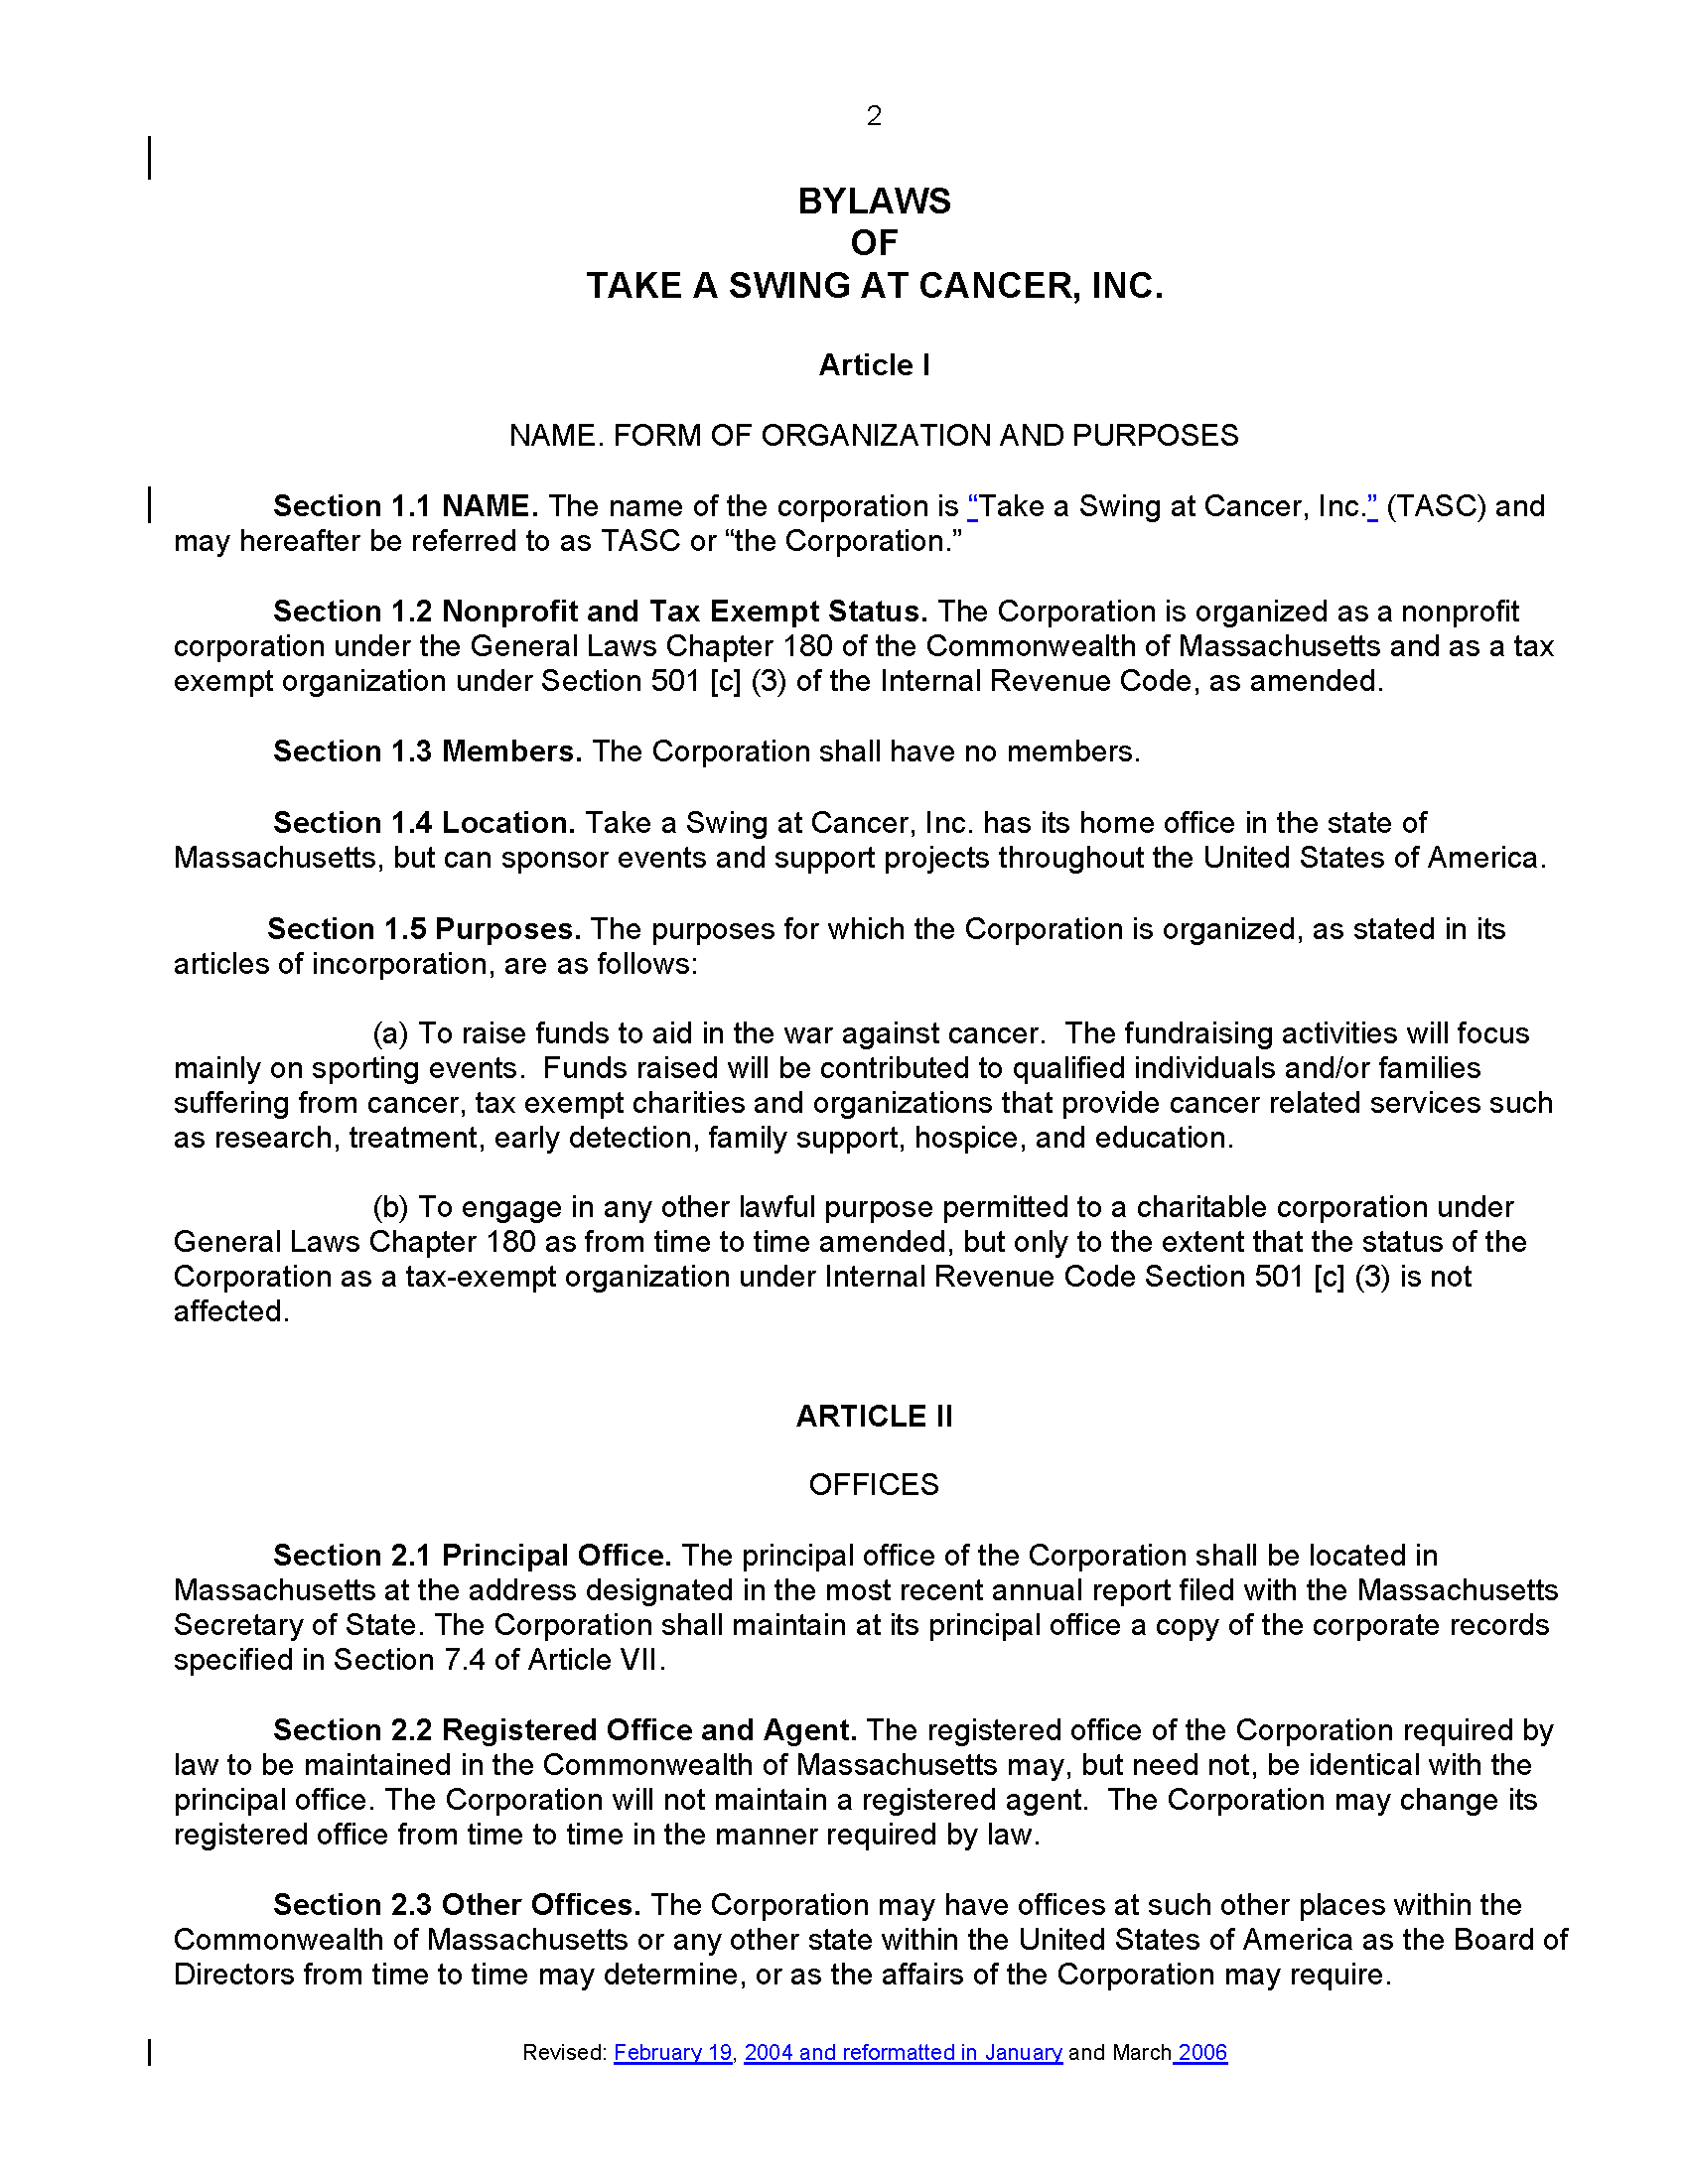 File tasc bylaws 2006 wikipedia for S corp bylaws template